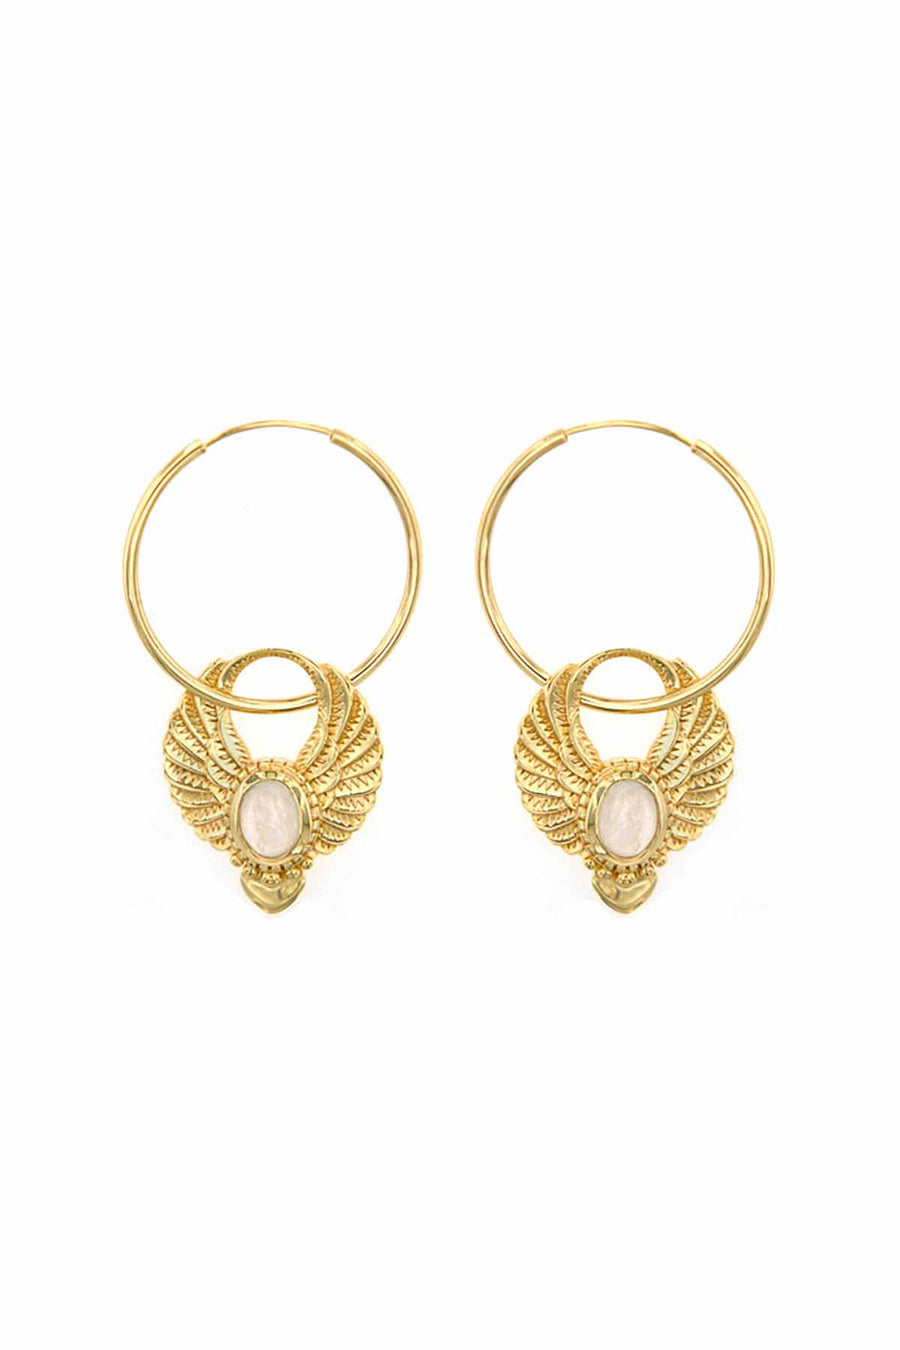 SACRED WINGS EARRINGS GOLD MOONSTONE